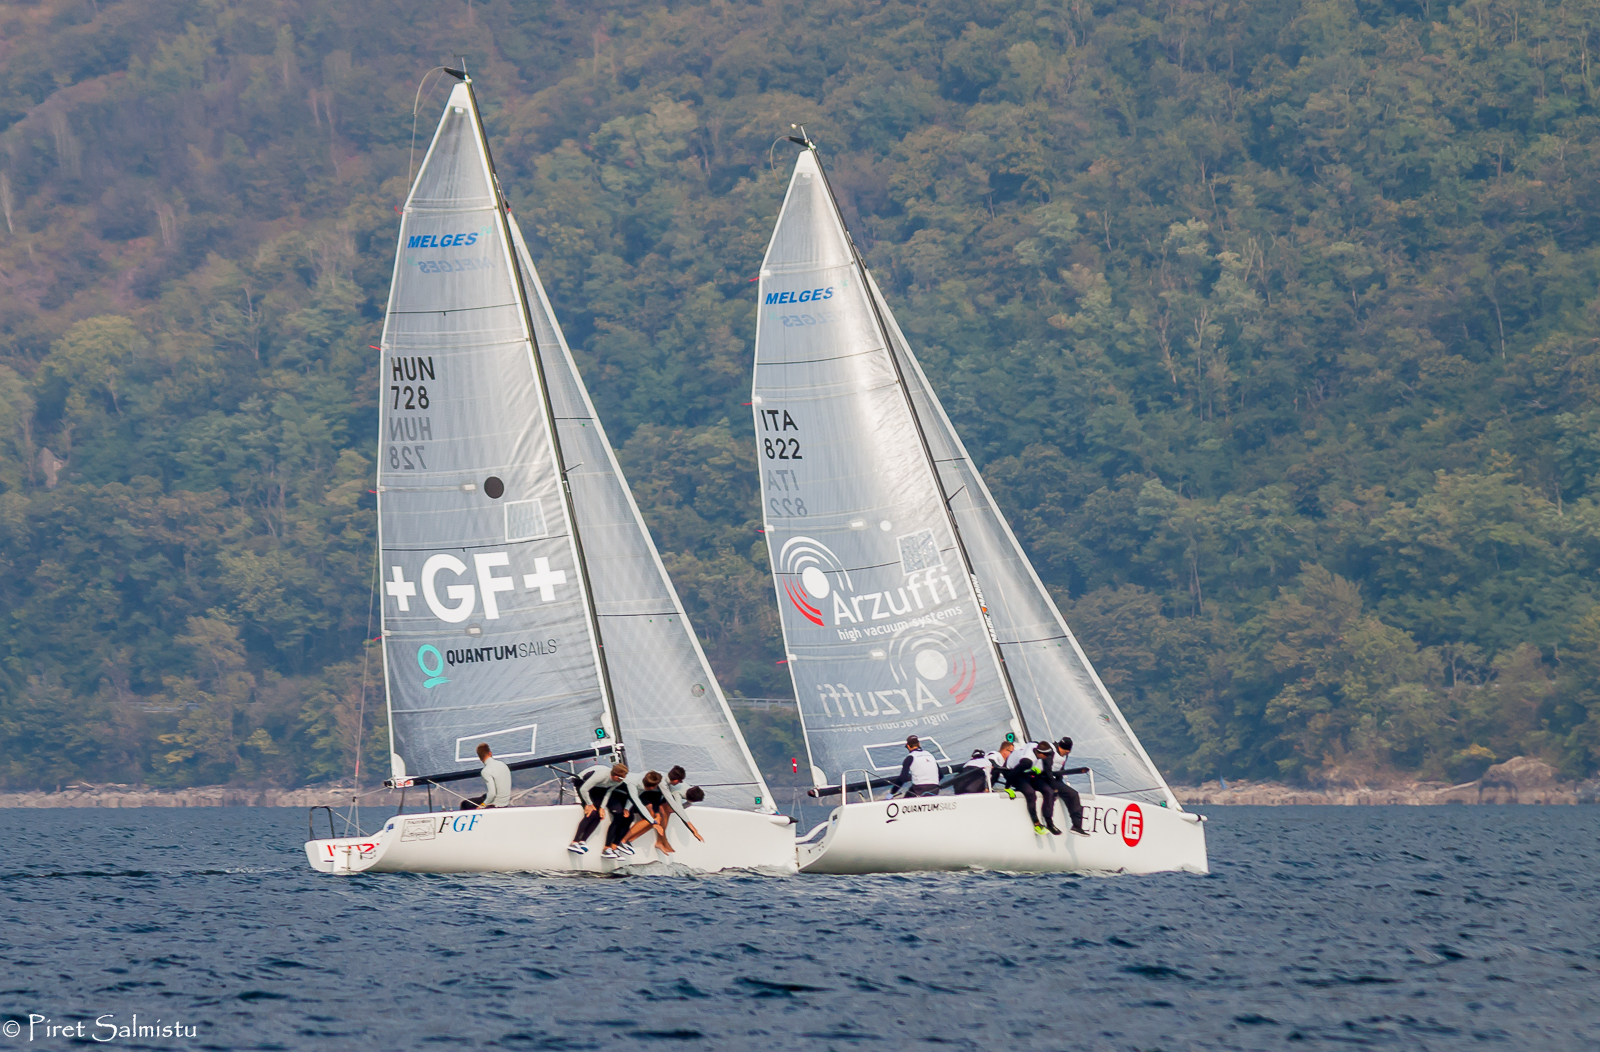 EFG with Carlo Fracassoli in helm and FGF Sailing Team with Robert Bakoczy